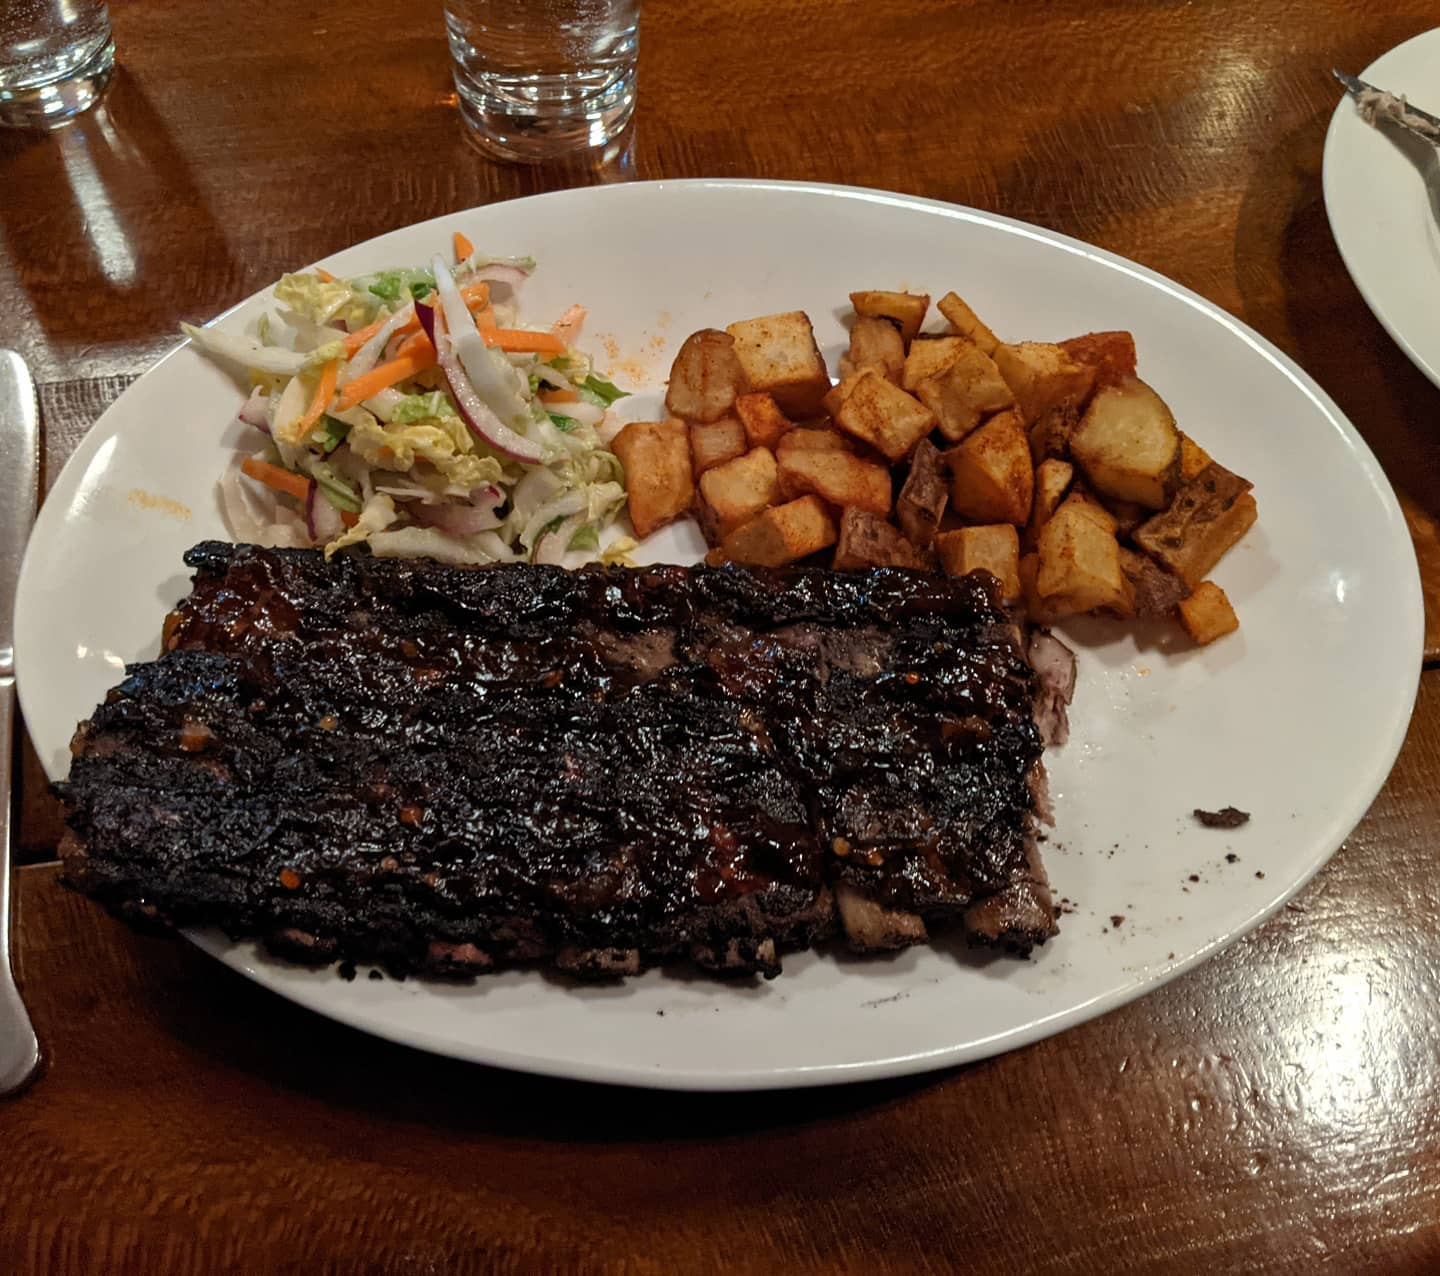 Not a lot of opportunities for #foodporn in a busy week, but here's some ribs cut St. Louis style and cooked in an Asian barbecue sauce. Really tender, and really good. #cleveland #fatcatstremont